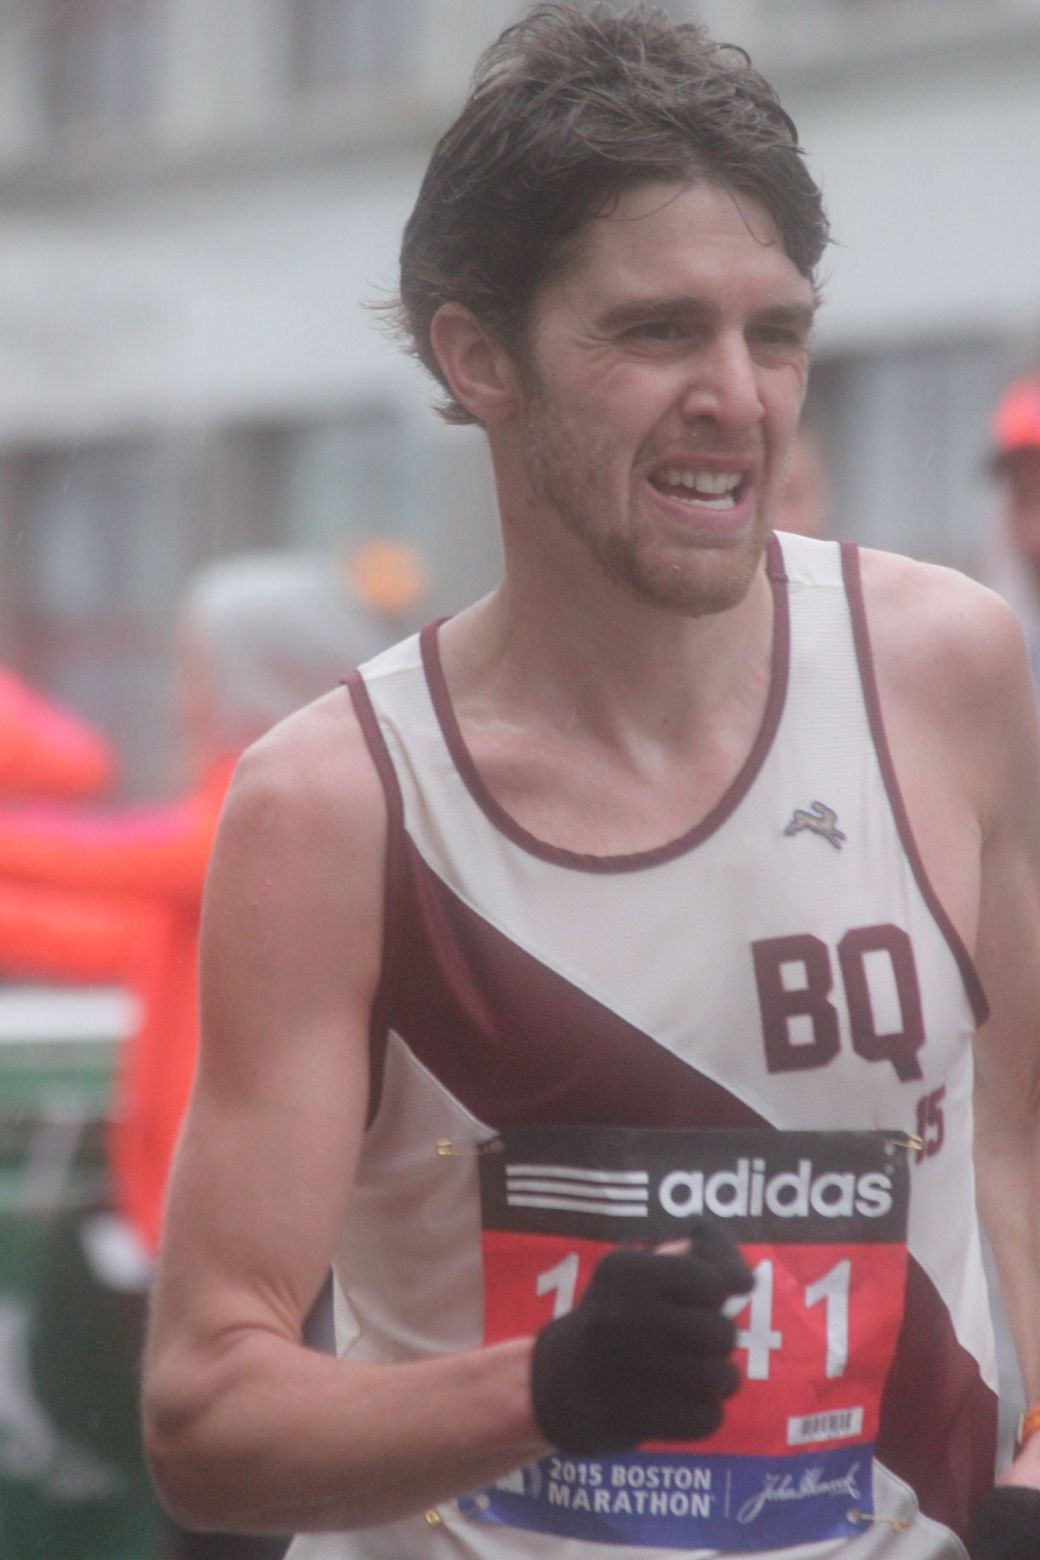 boston marathon april 20 2015 racer number BQ